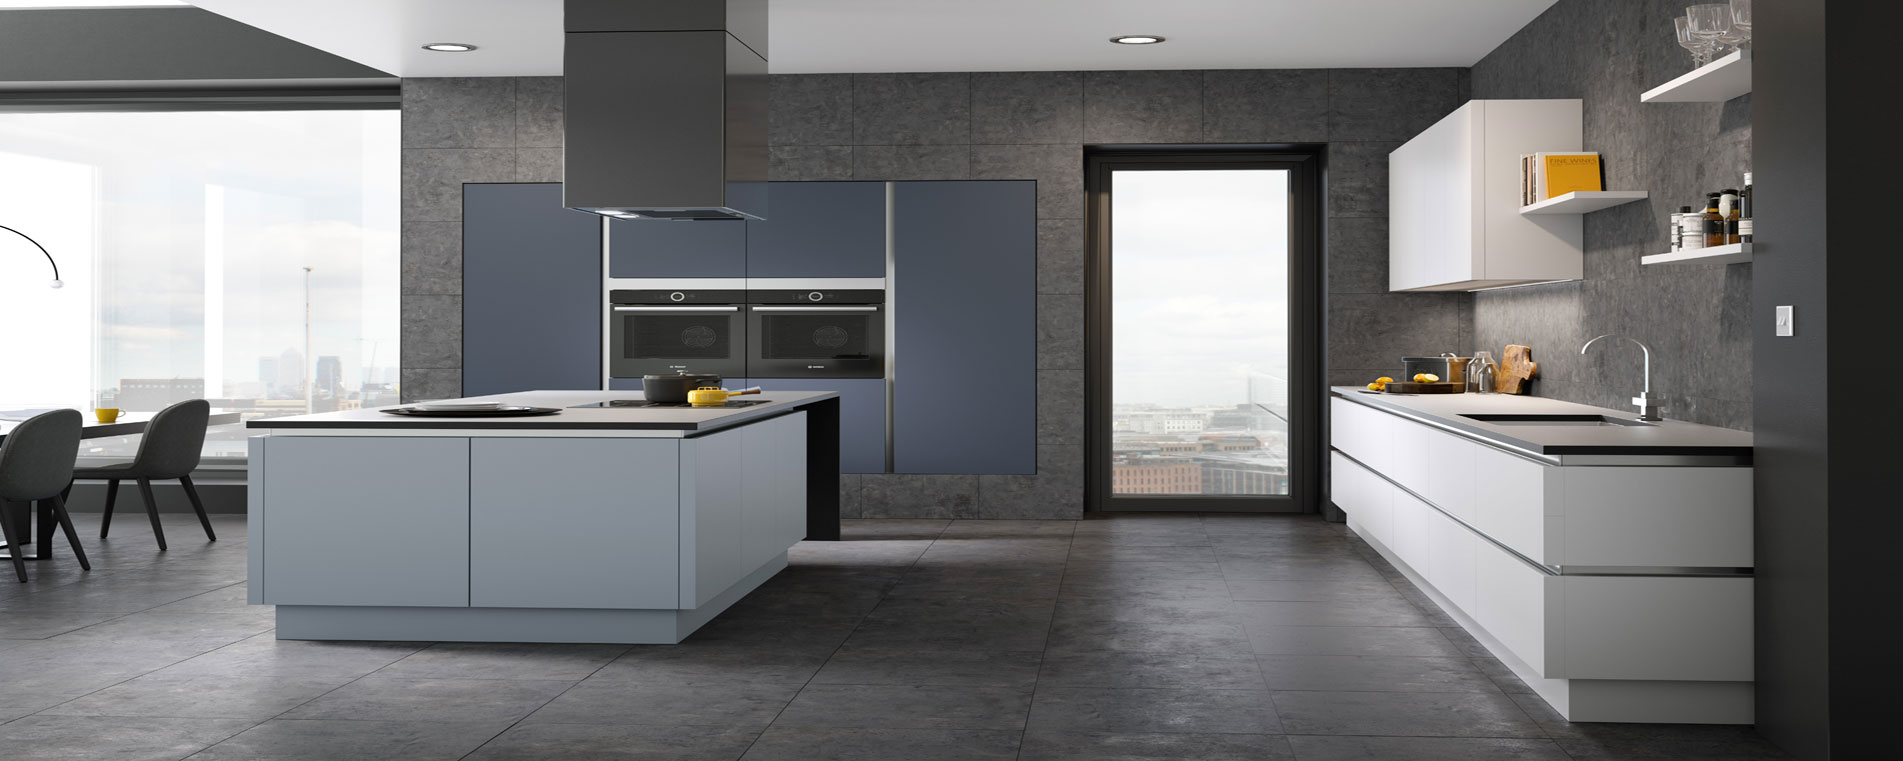 Mereway Kitchens Cucina Colore Kitchens English Revival Kitchens